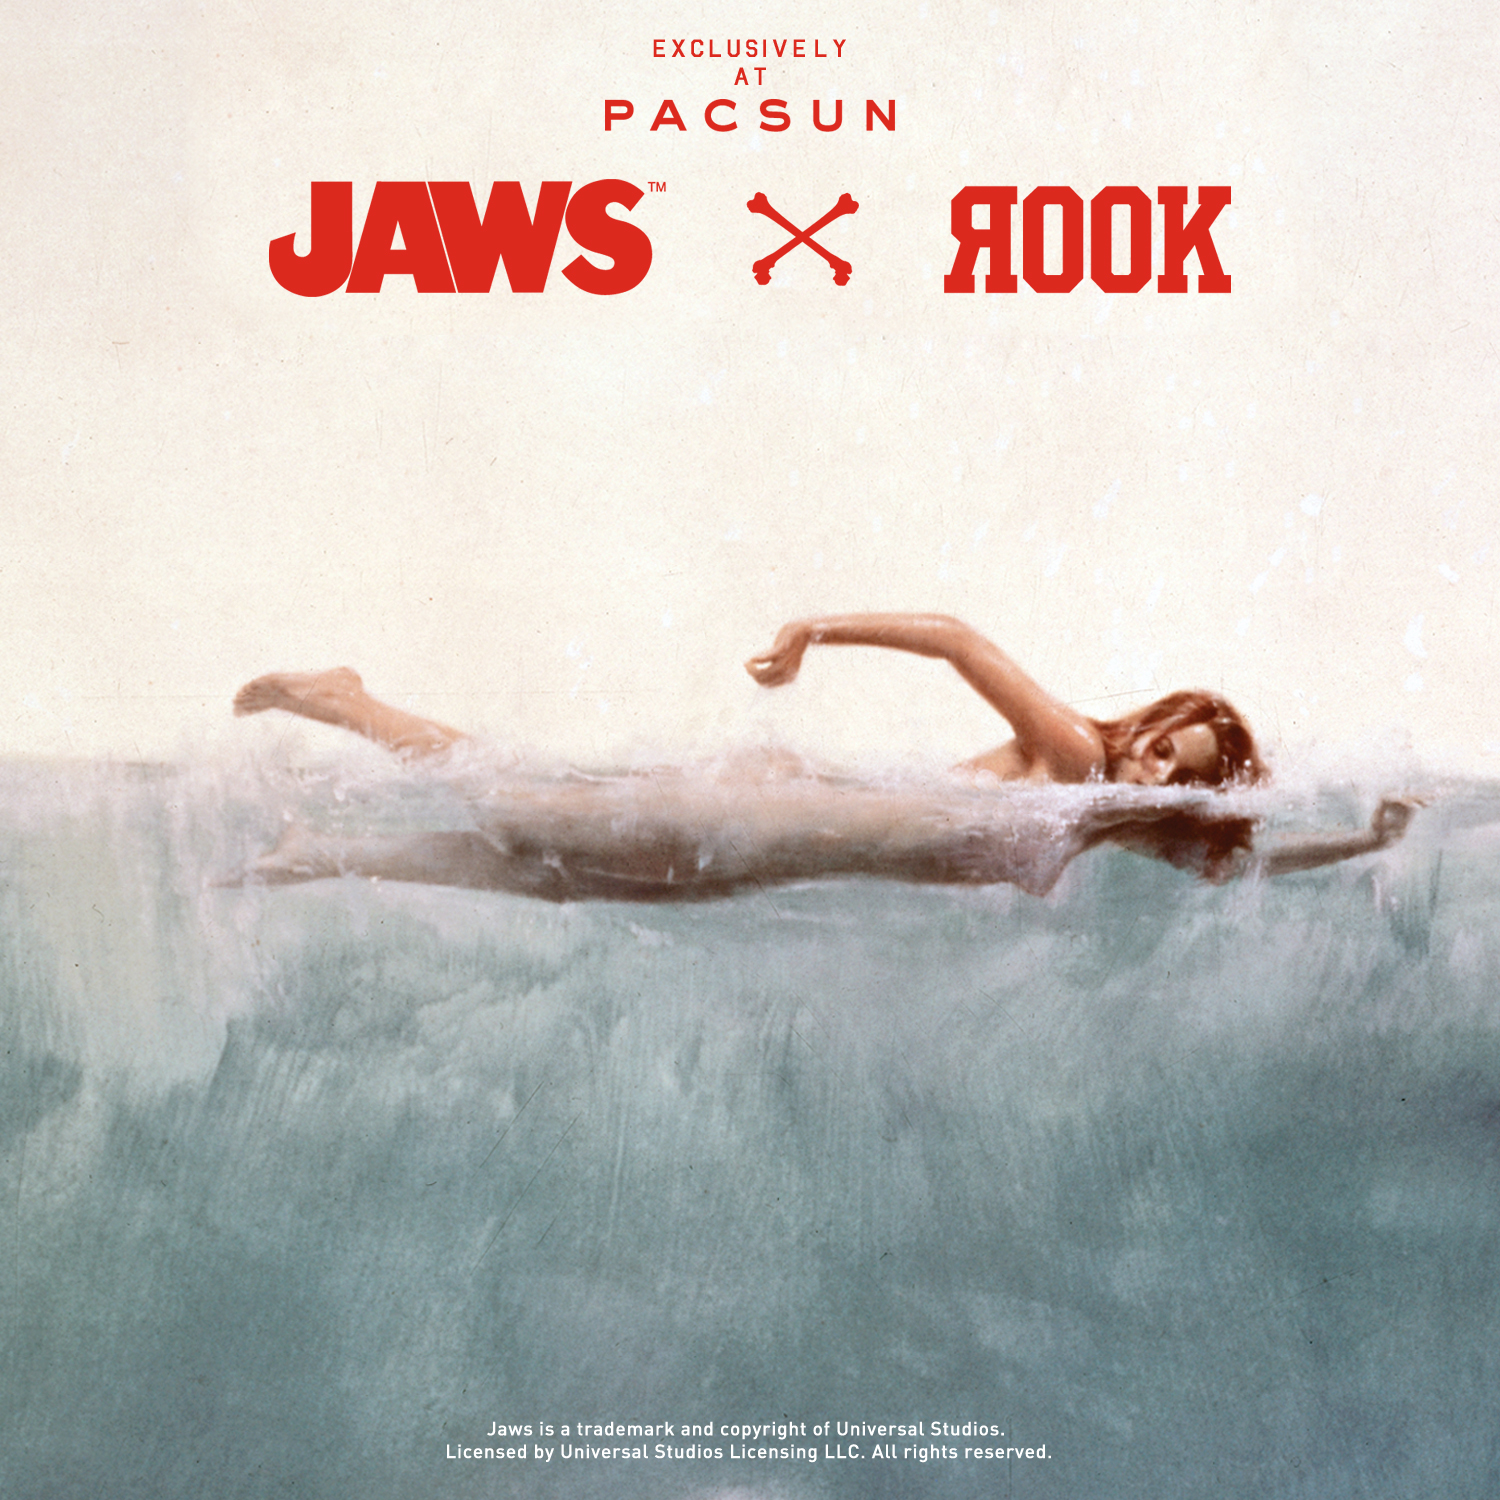 ROOK Helps Celebrate Jaws' 40th Anniversary With A PacSun Exclusive Collection